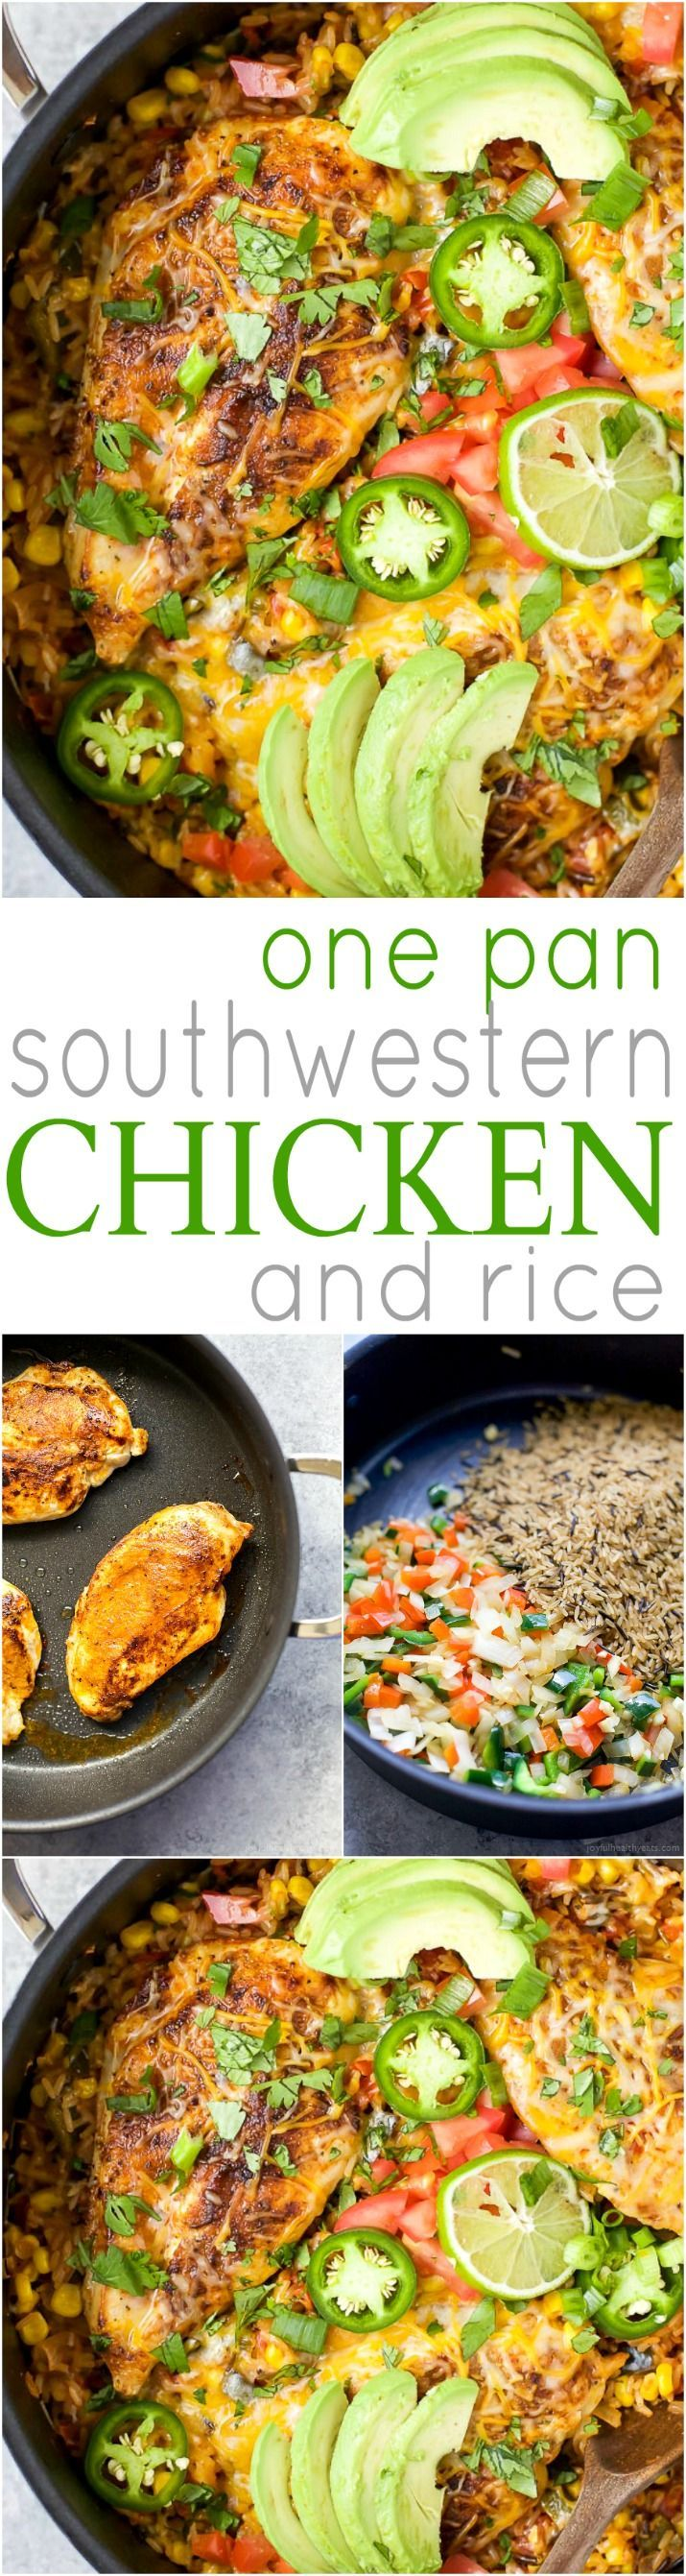 ONE PAN SOUTHWESTERN CHICKEN AND RICE - an easy healthy dinner recipe all made in one pan for easy cleanup! It's perfect for the family and bursting with flavor! | joyfulhealthyeats.com #ad | gluten free recipes #FavoriteFamilyRecipe #MacysLove